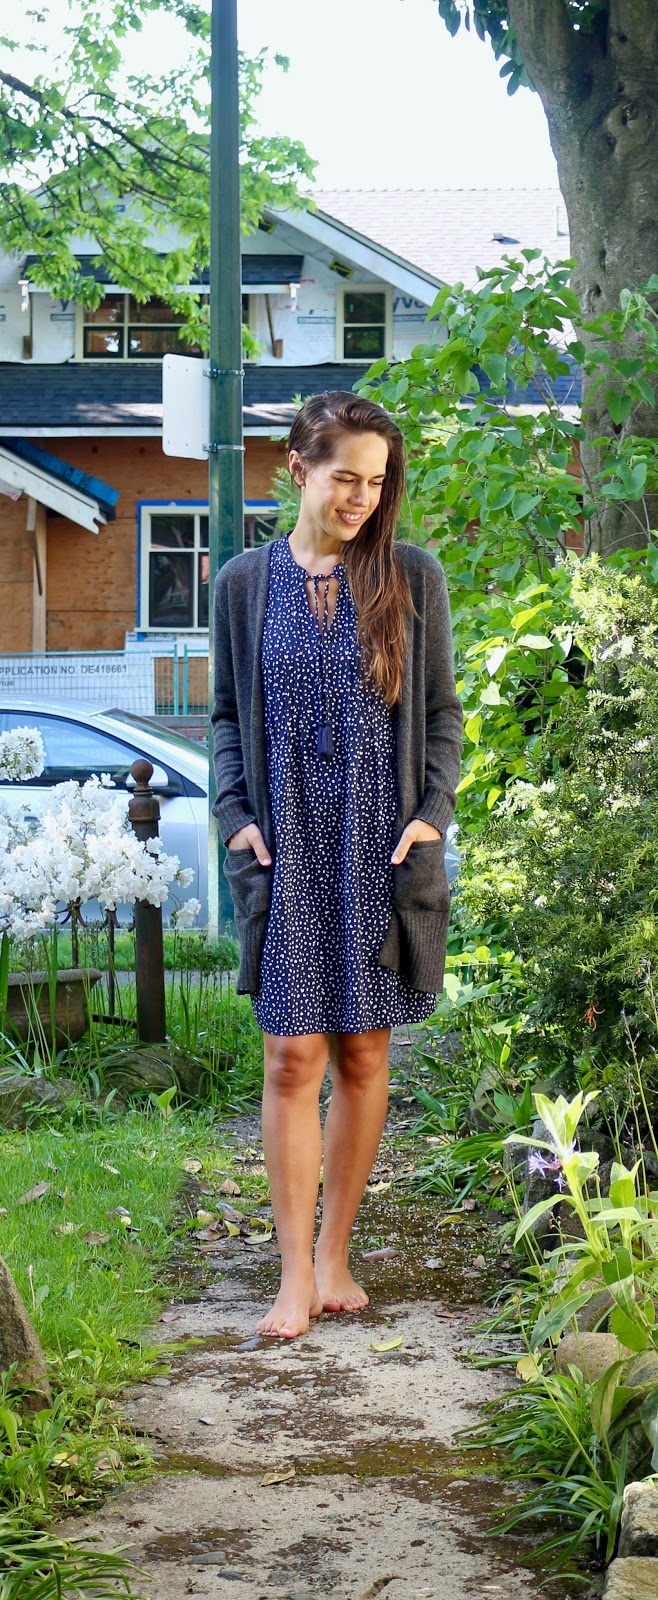 Jules in Flats - Sleevelesss Tie-Neck Swing Dress (Easy Work from Home Outfit)